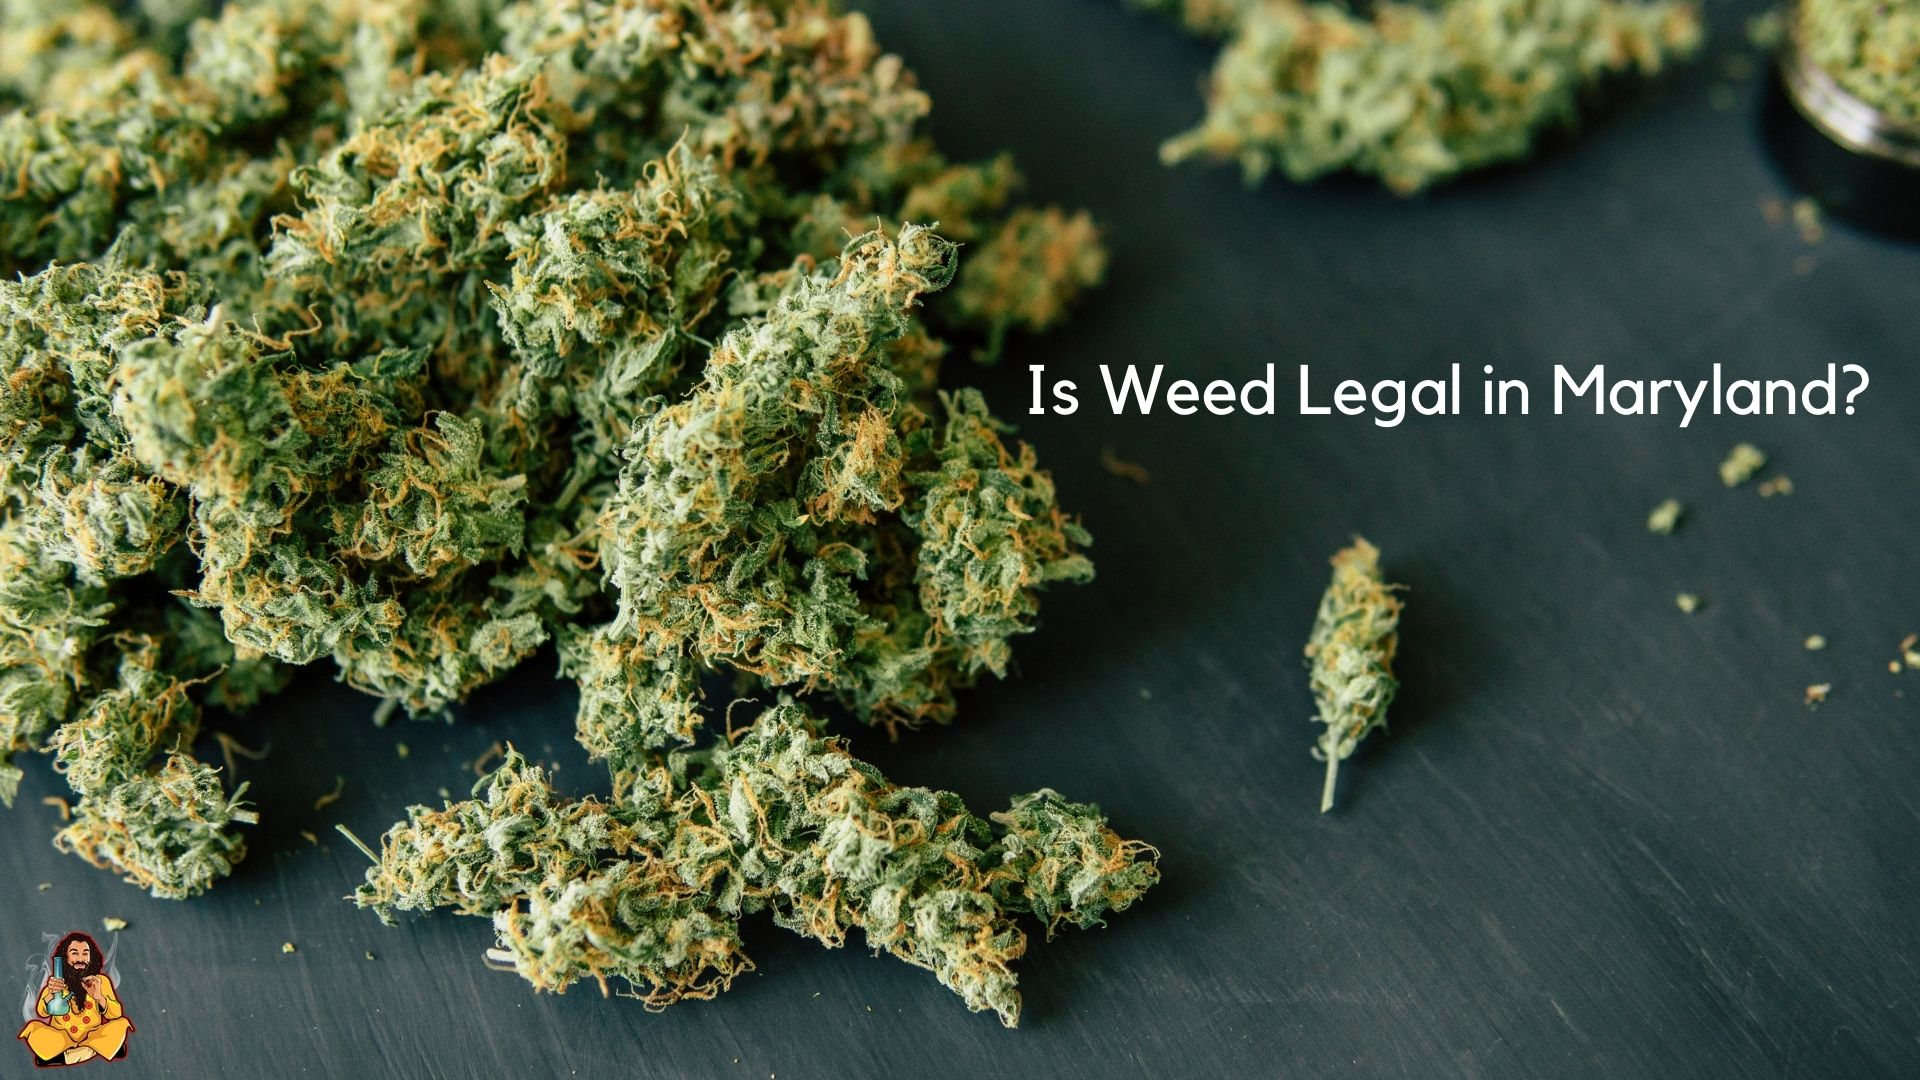 Is Weed Legal in Maryland?